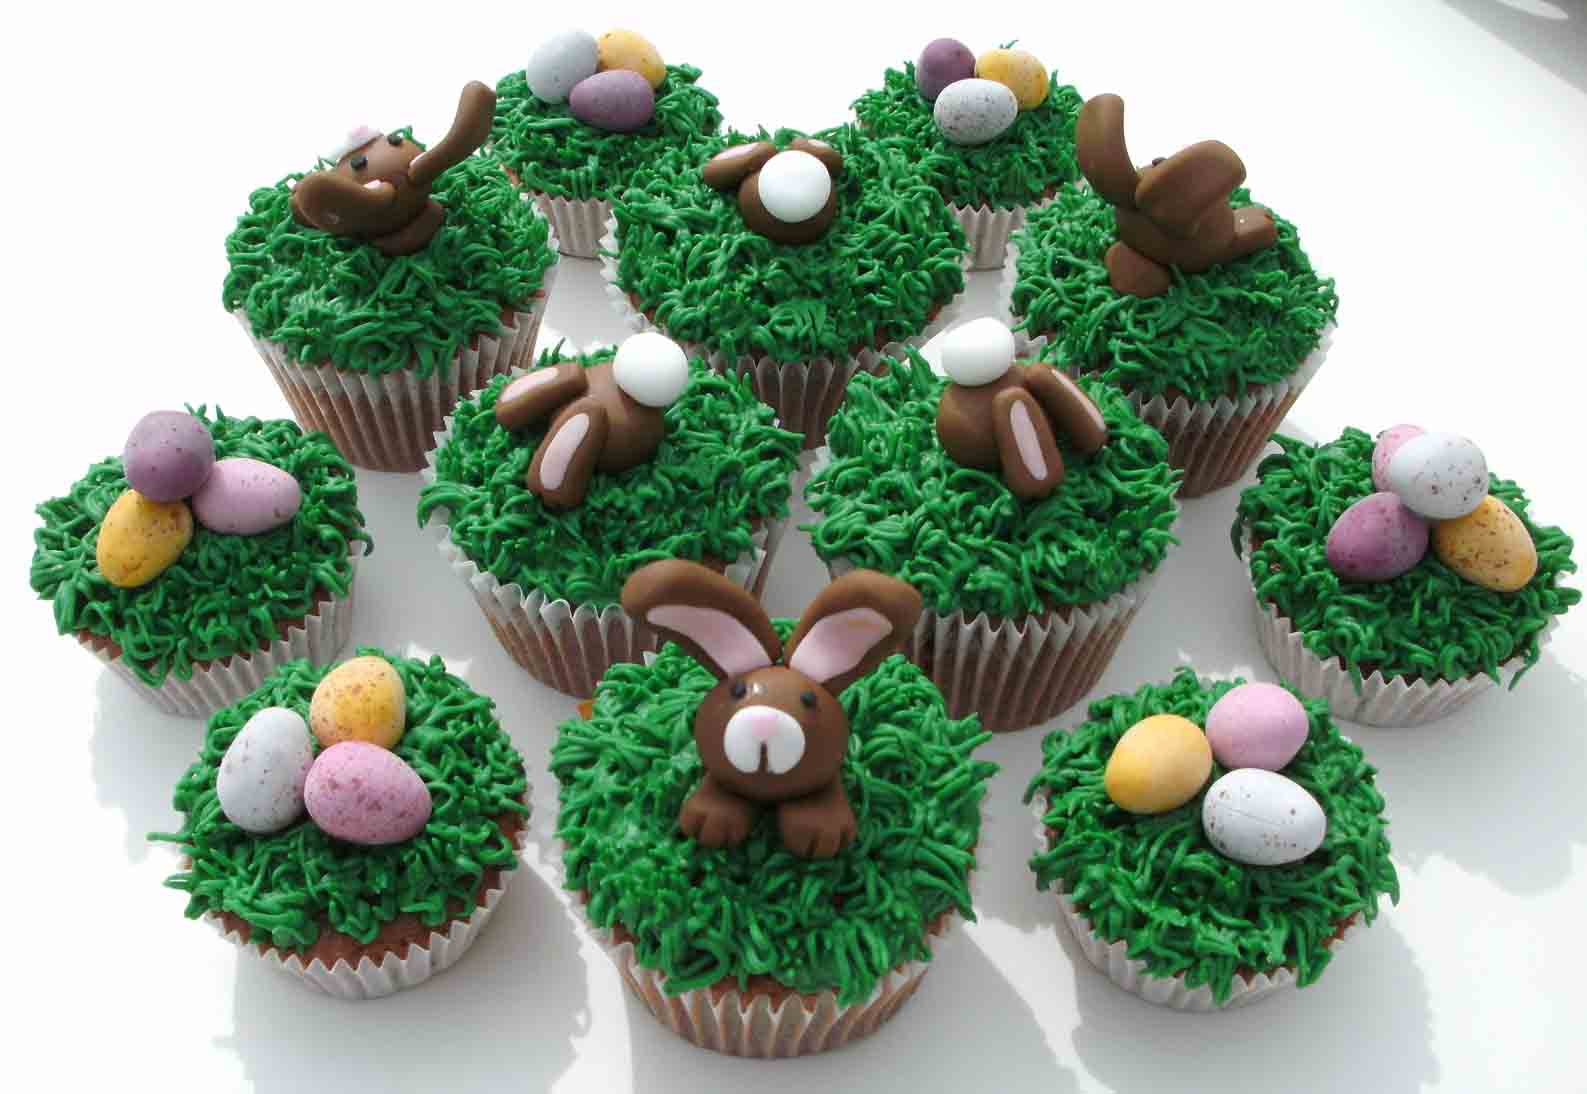 Cupcakes de p scoa receita de cupcake for Cute cupcake decorating ideas for easter